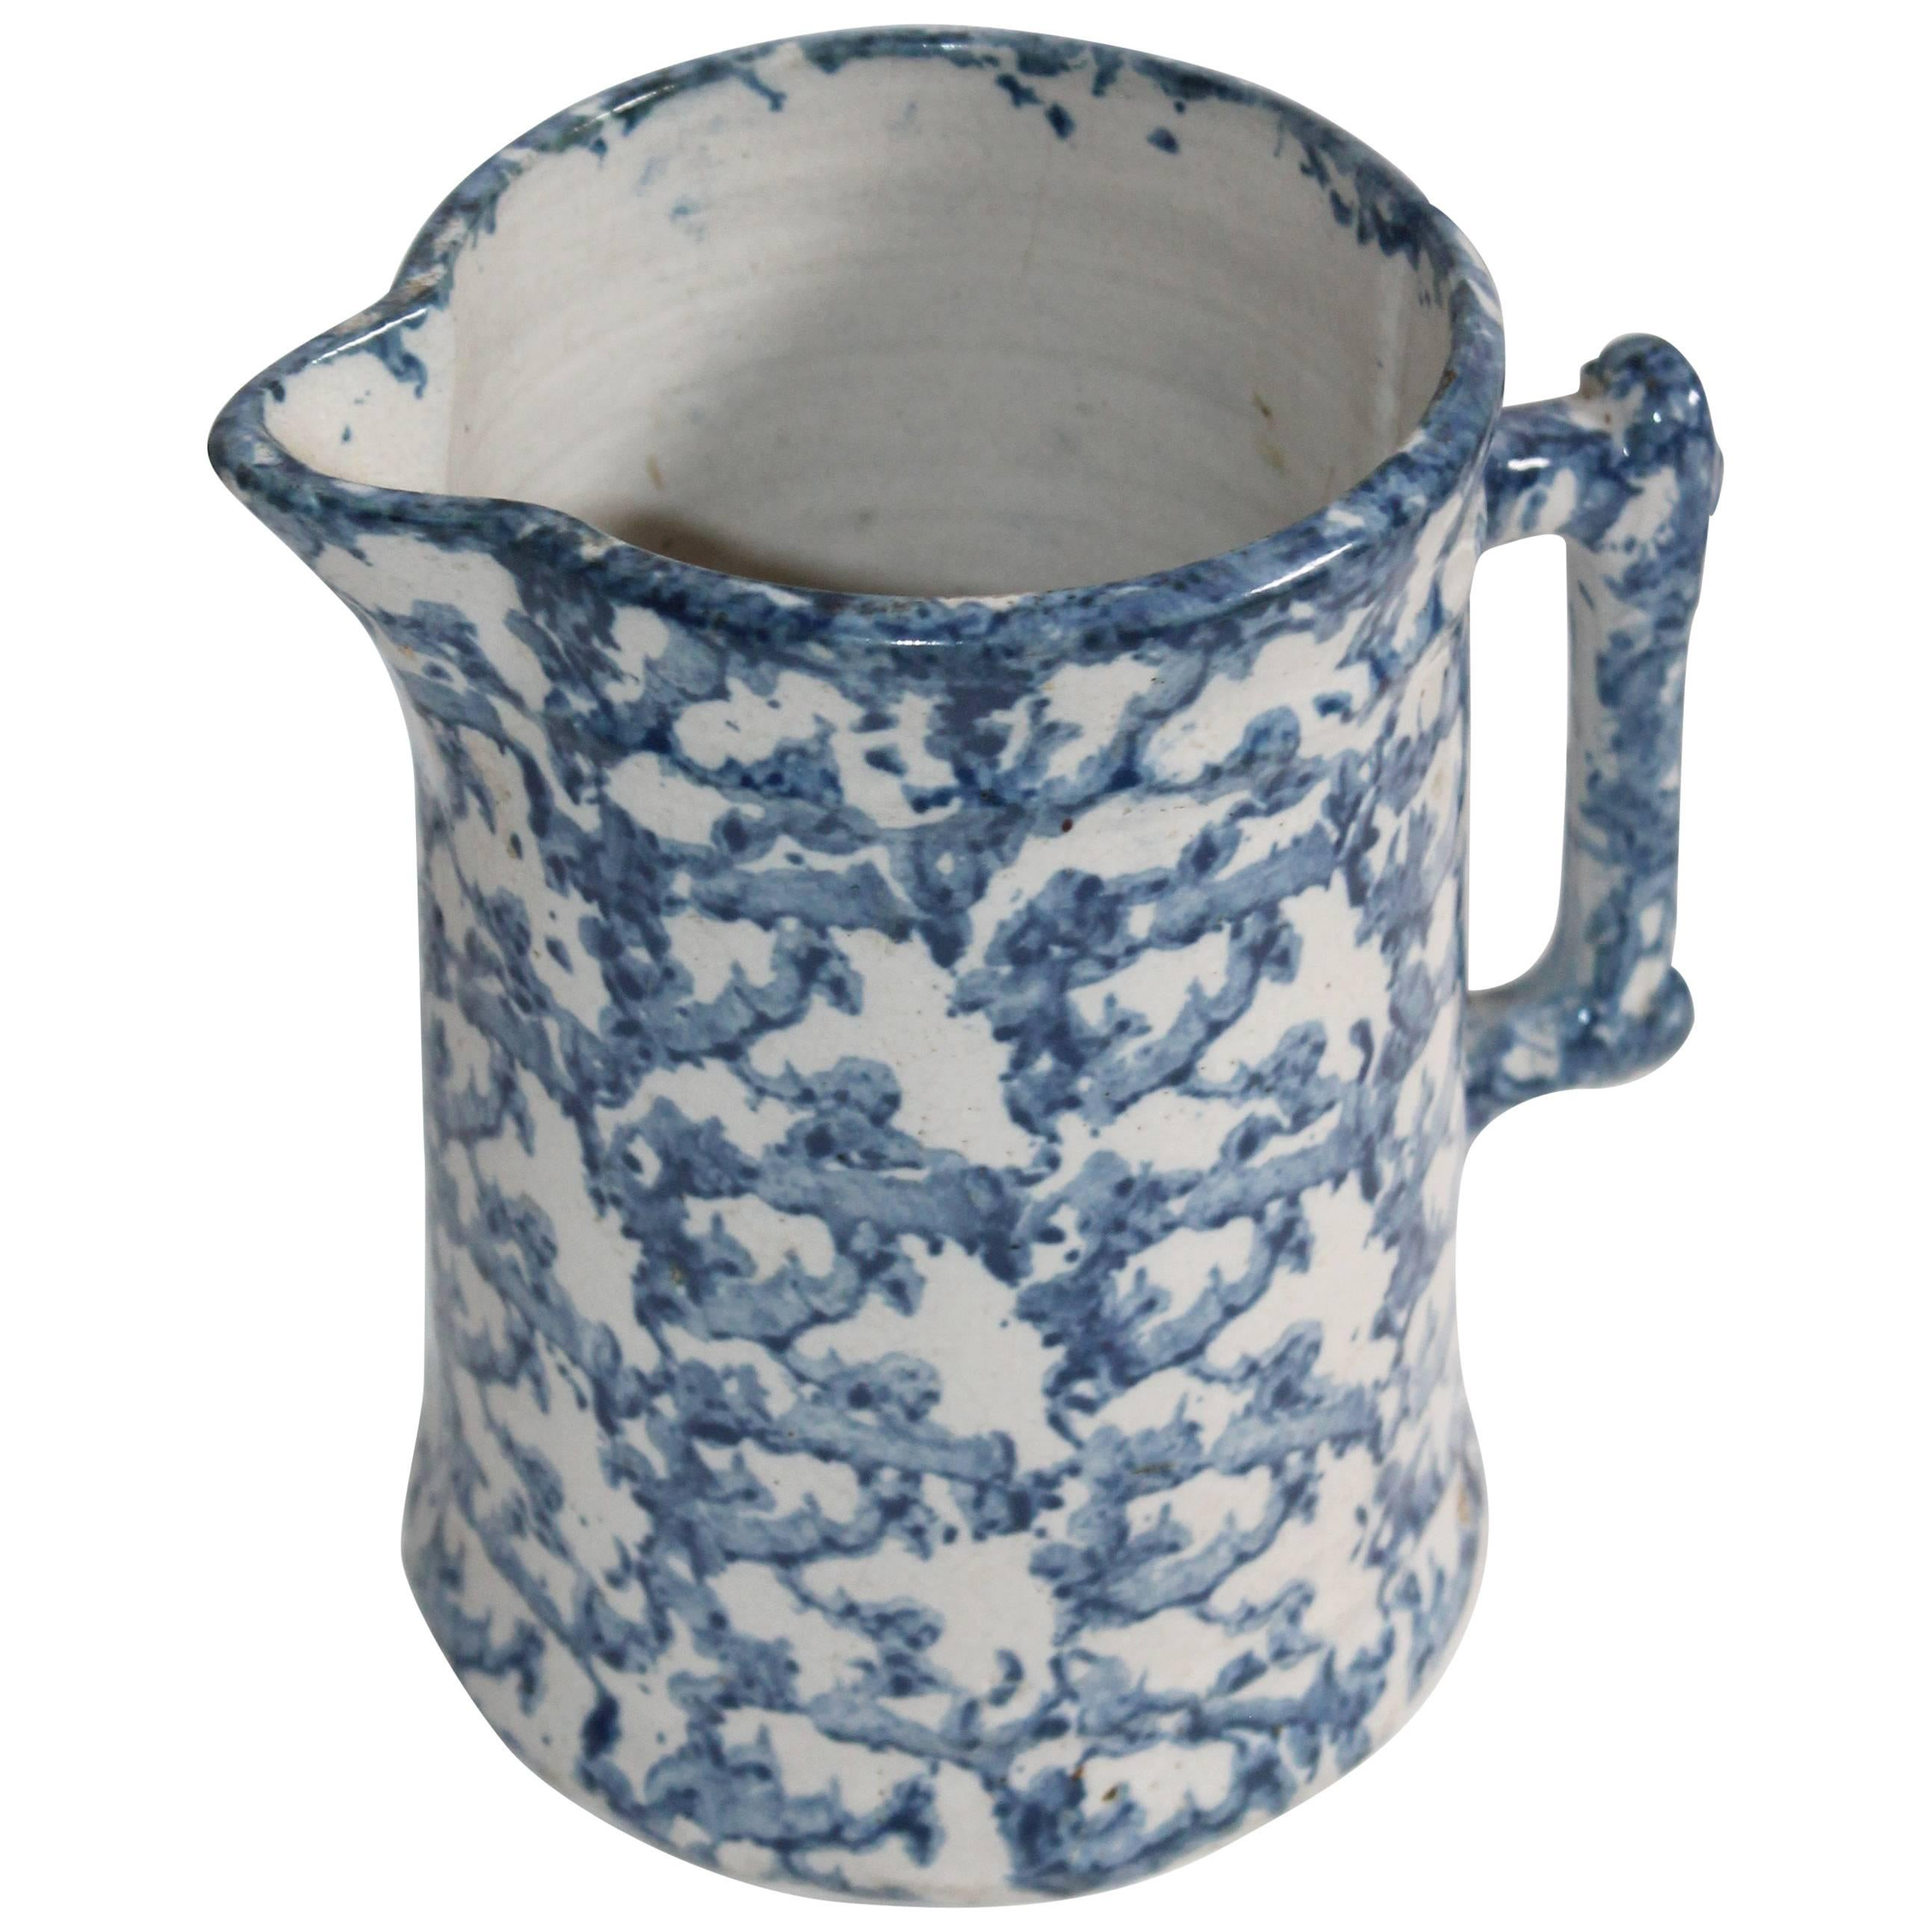 19th Century Pottery Sponge Ware Milk Pitcher